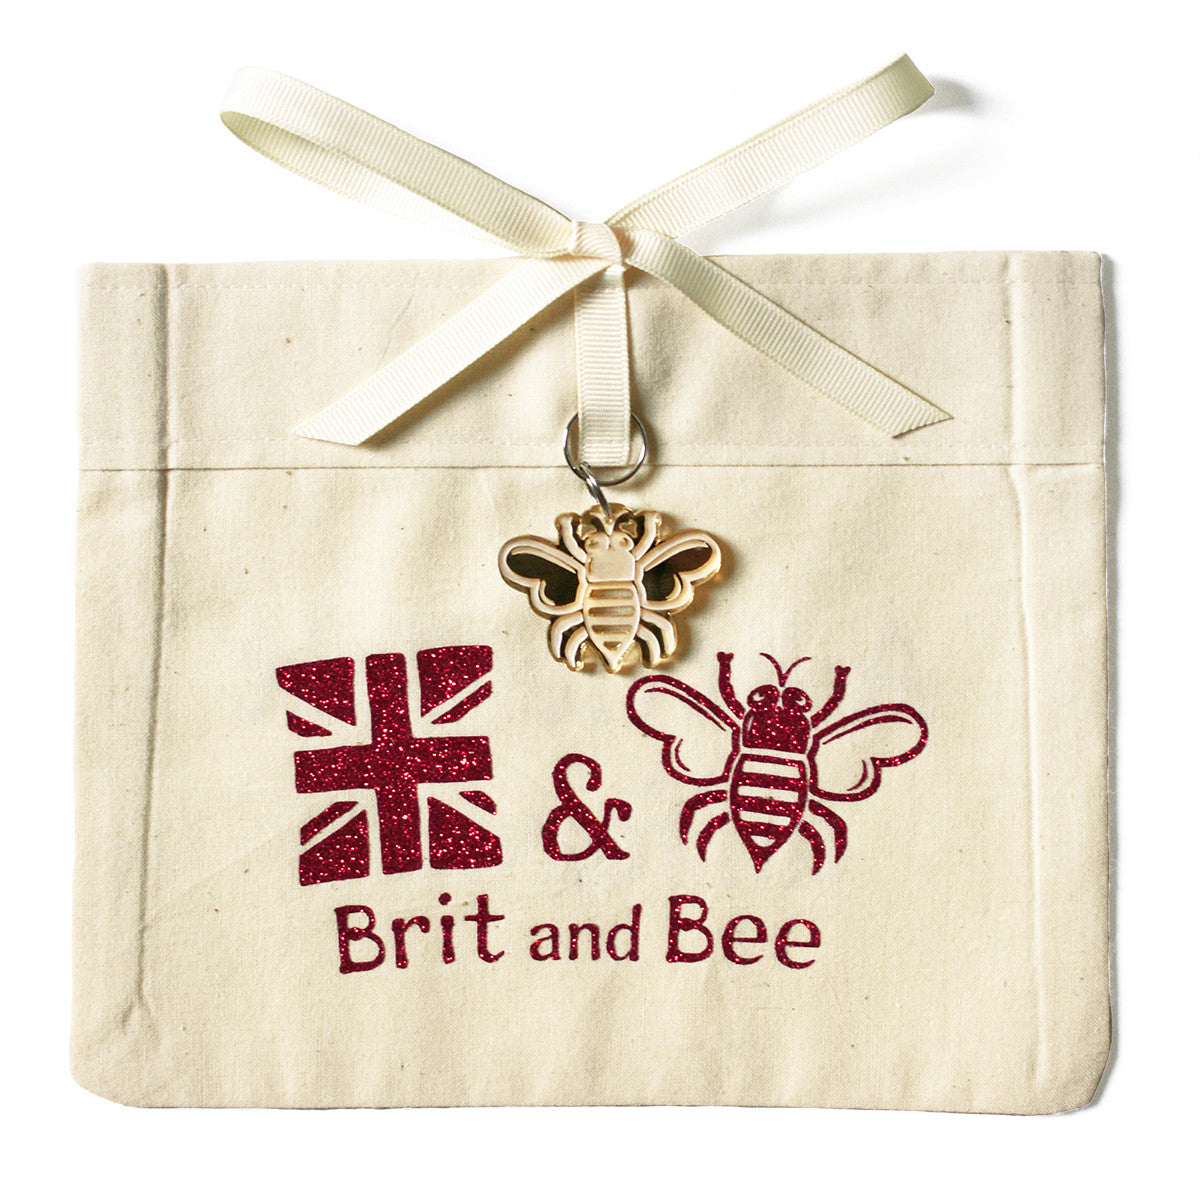 Brit and Bee Sorority Logo Ornament - Alpha Omicron Pi